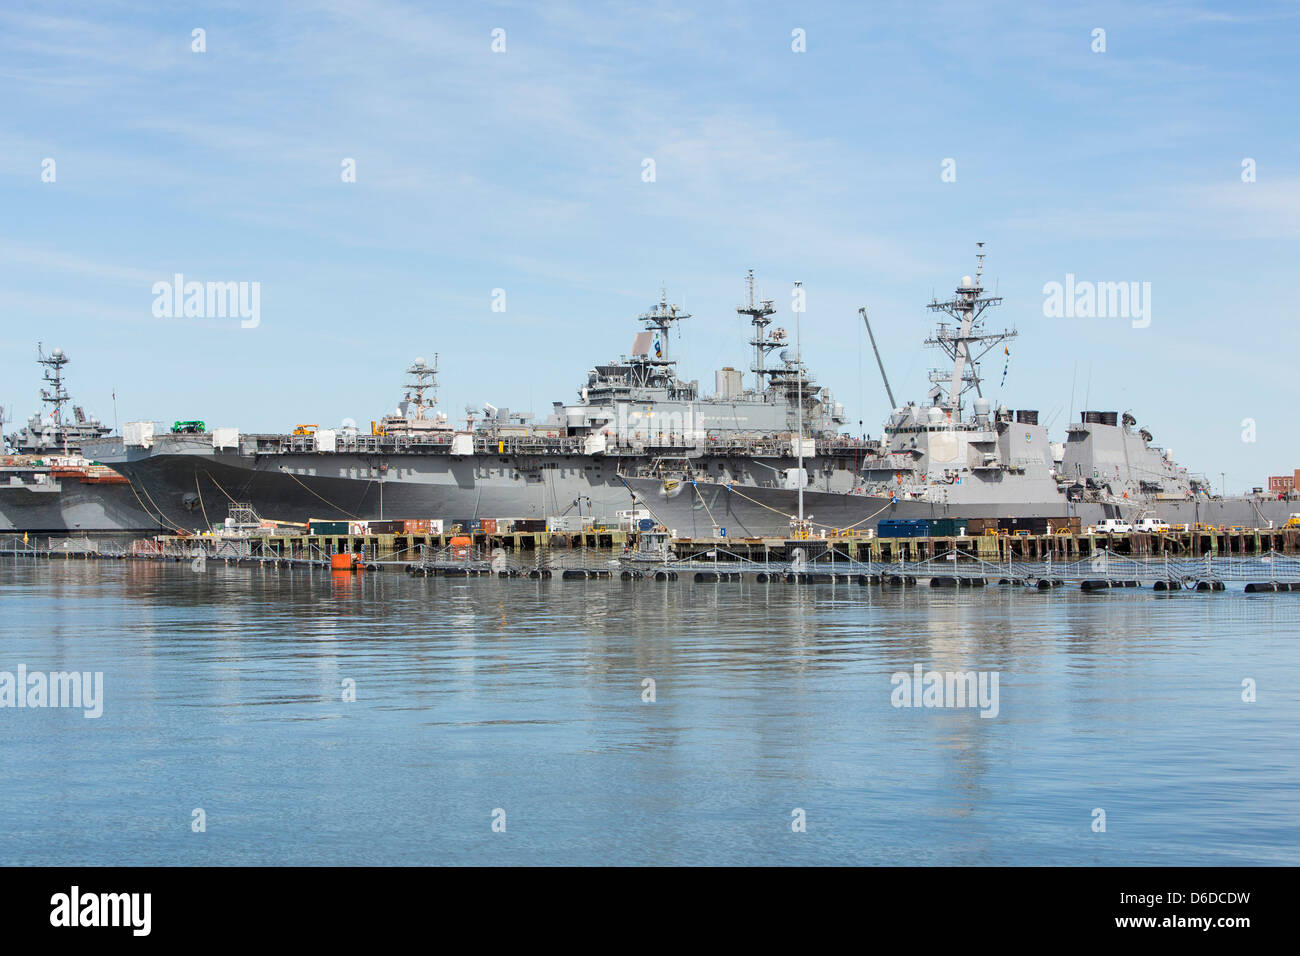 United States Navy ships in port at Naval Station Norfolk. Stock Photo